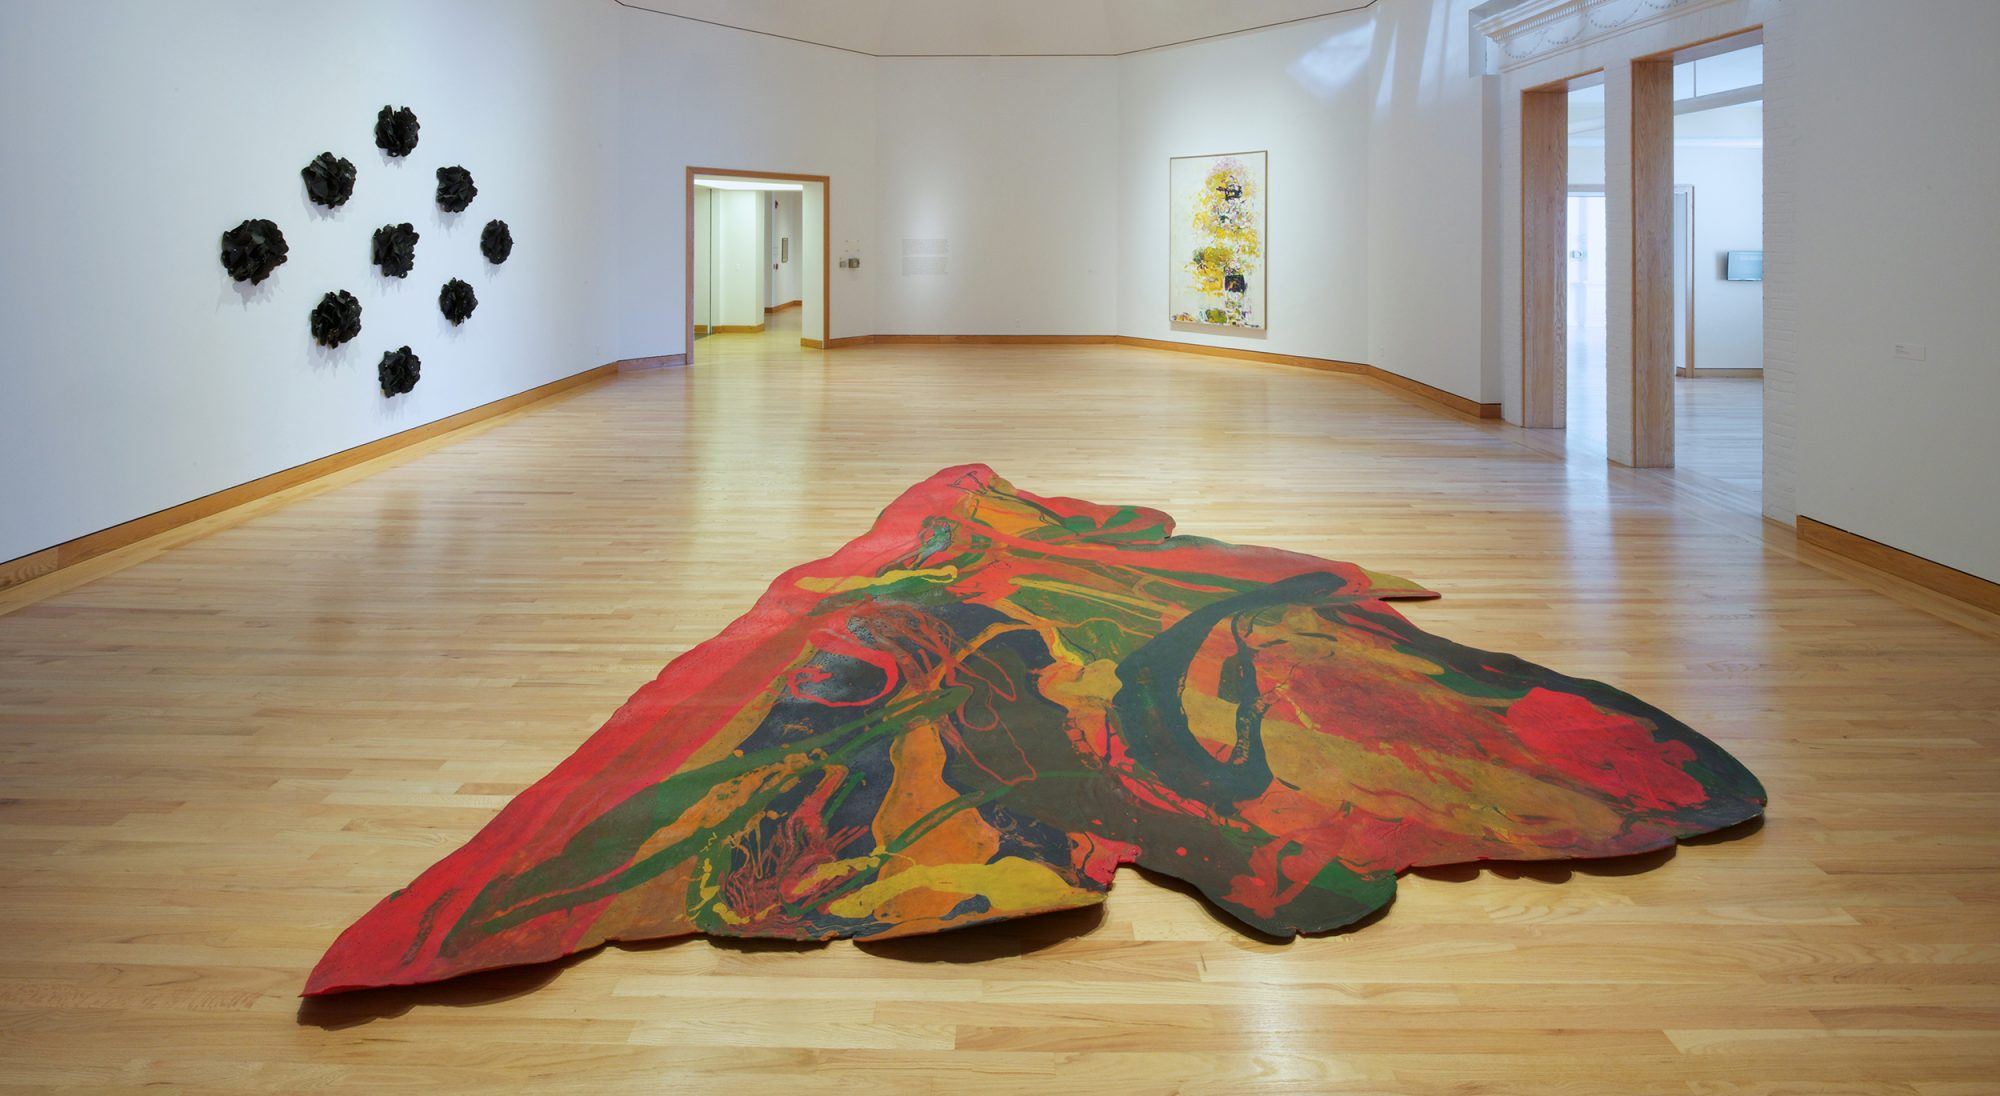 Installation view. American Art 1950-1979. Photo by Arthur Evans.